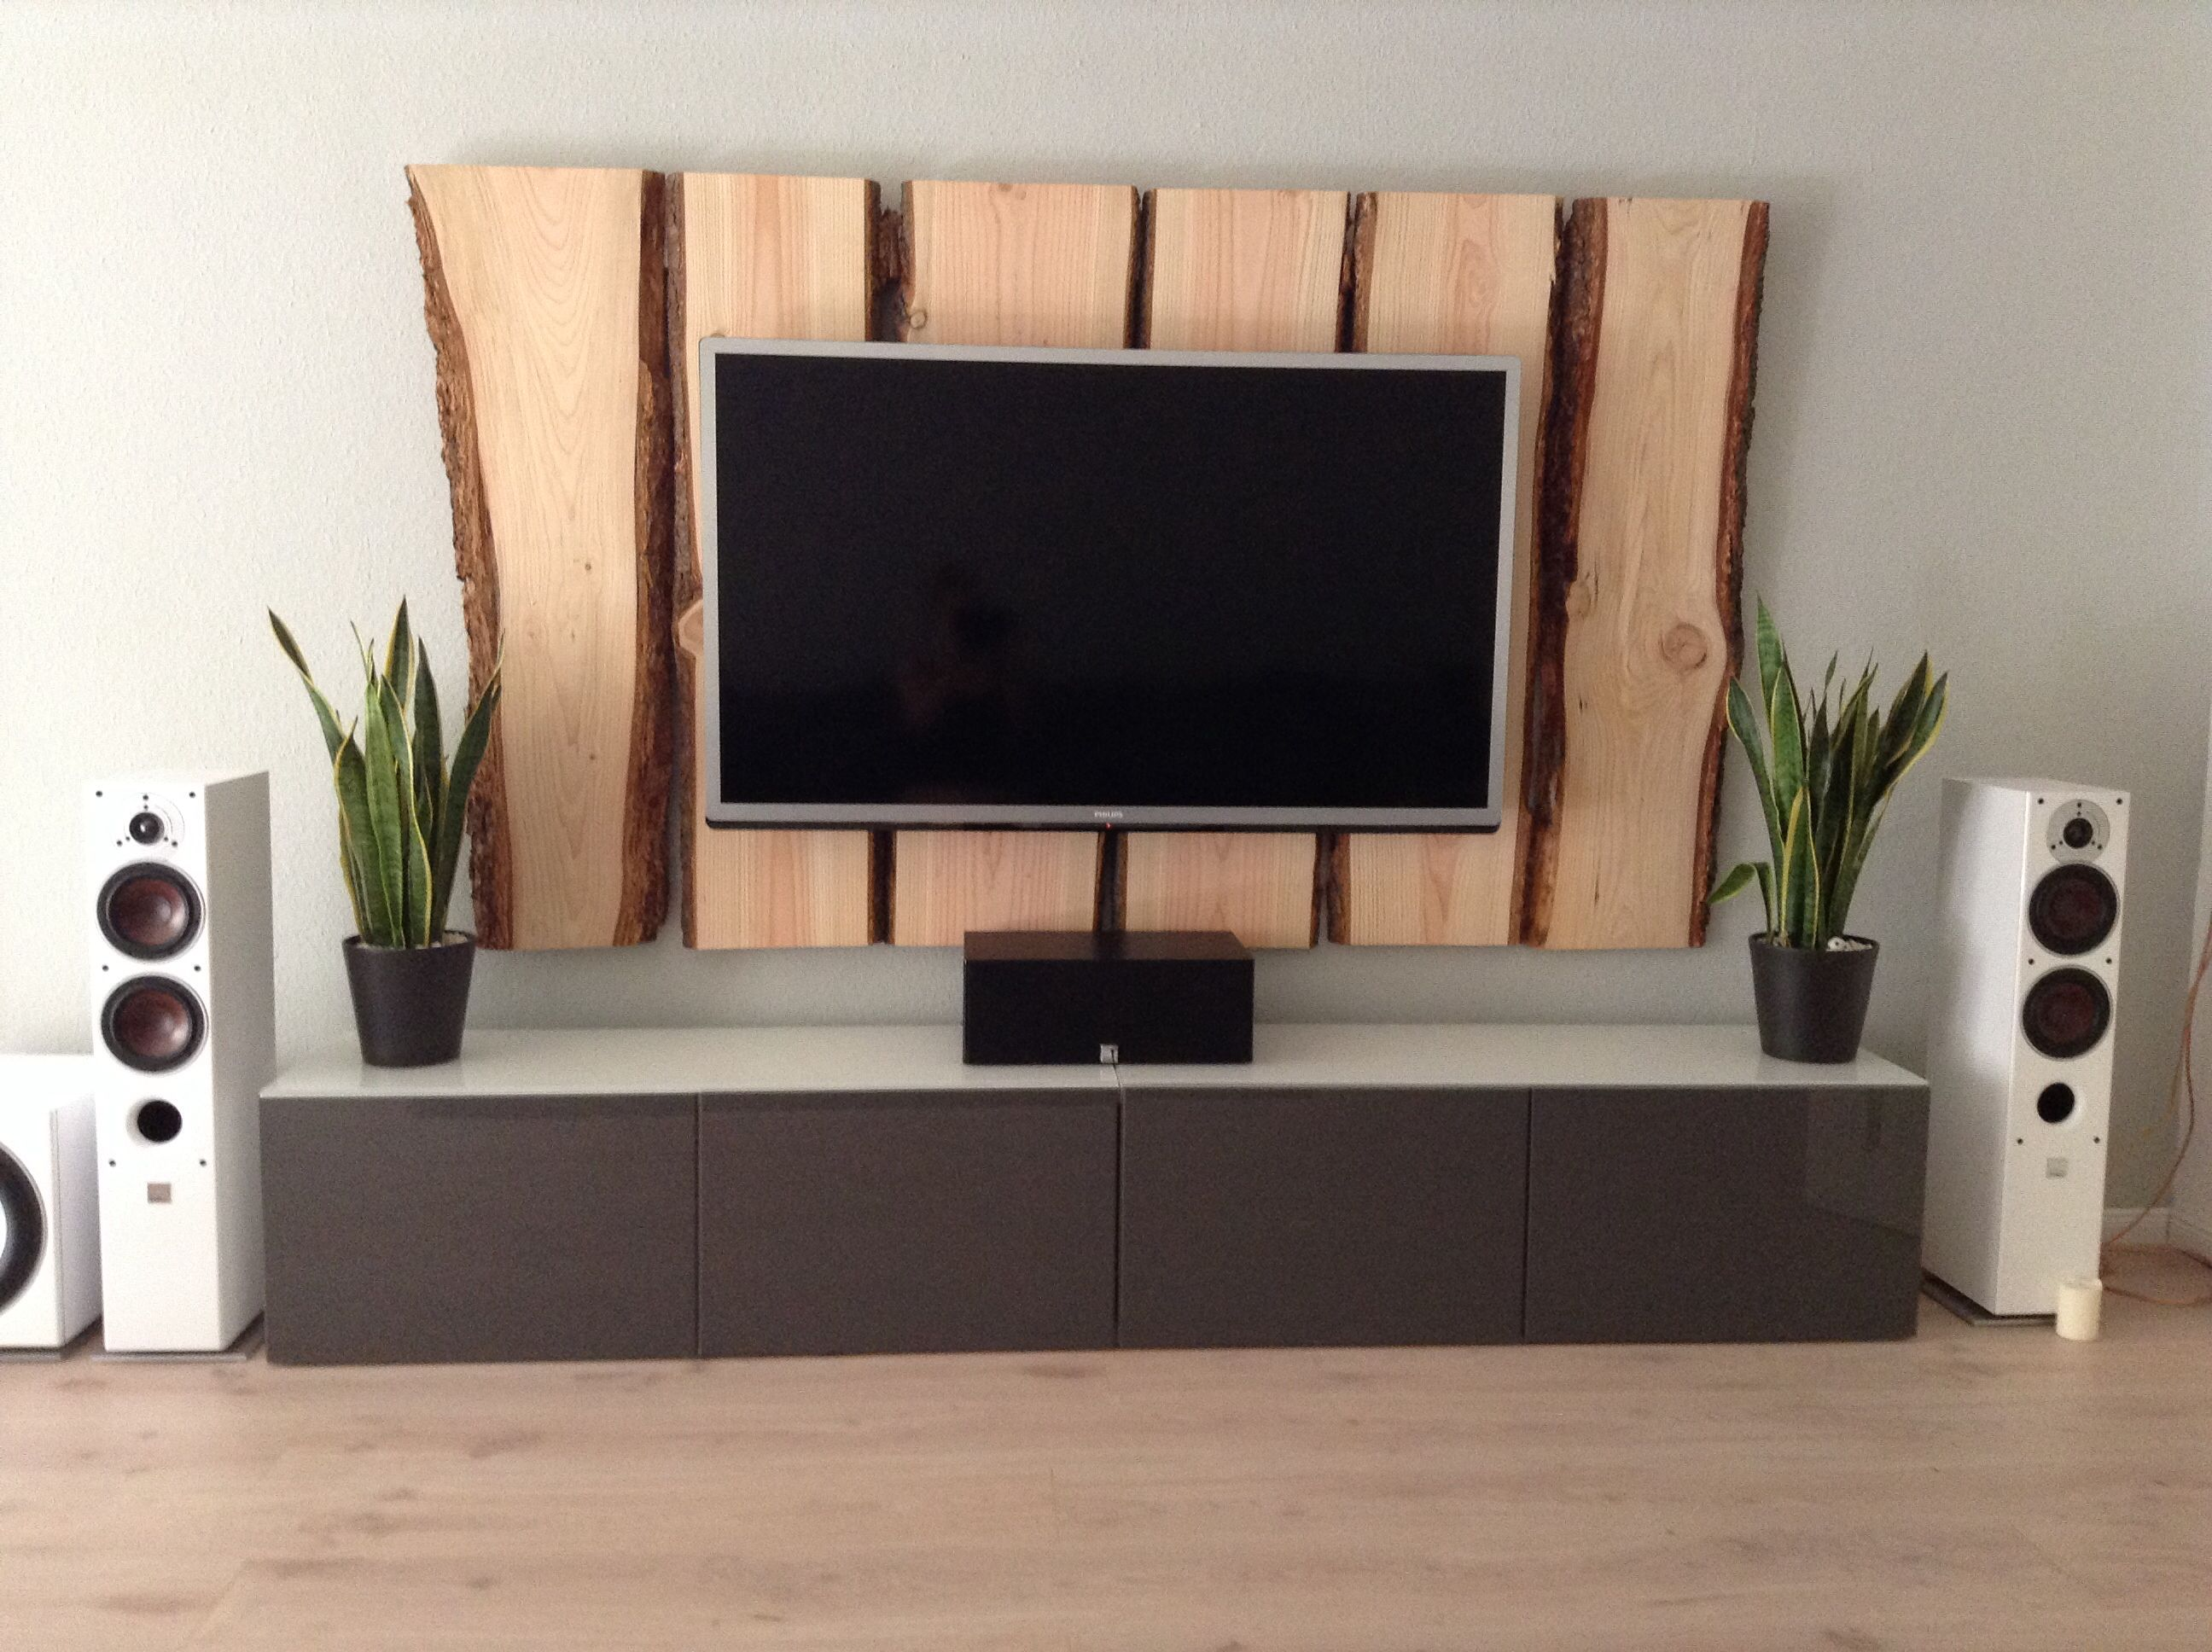 holz tv wand tv wall wood deko und so pinterest tv w nde tv wand gestalten und w nde. Black Bedroom Furniture Sets. Home Design Ideas